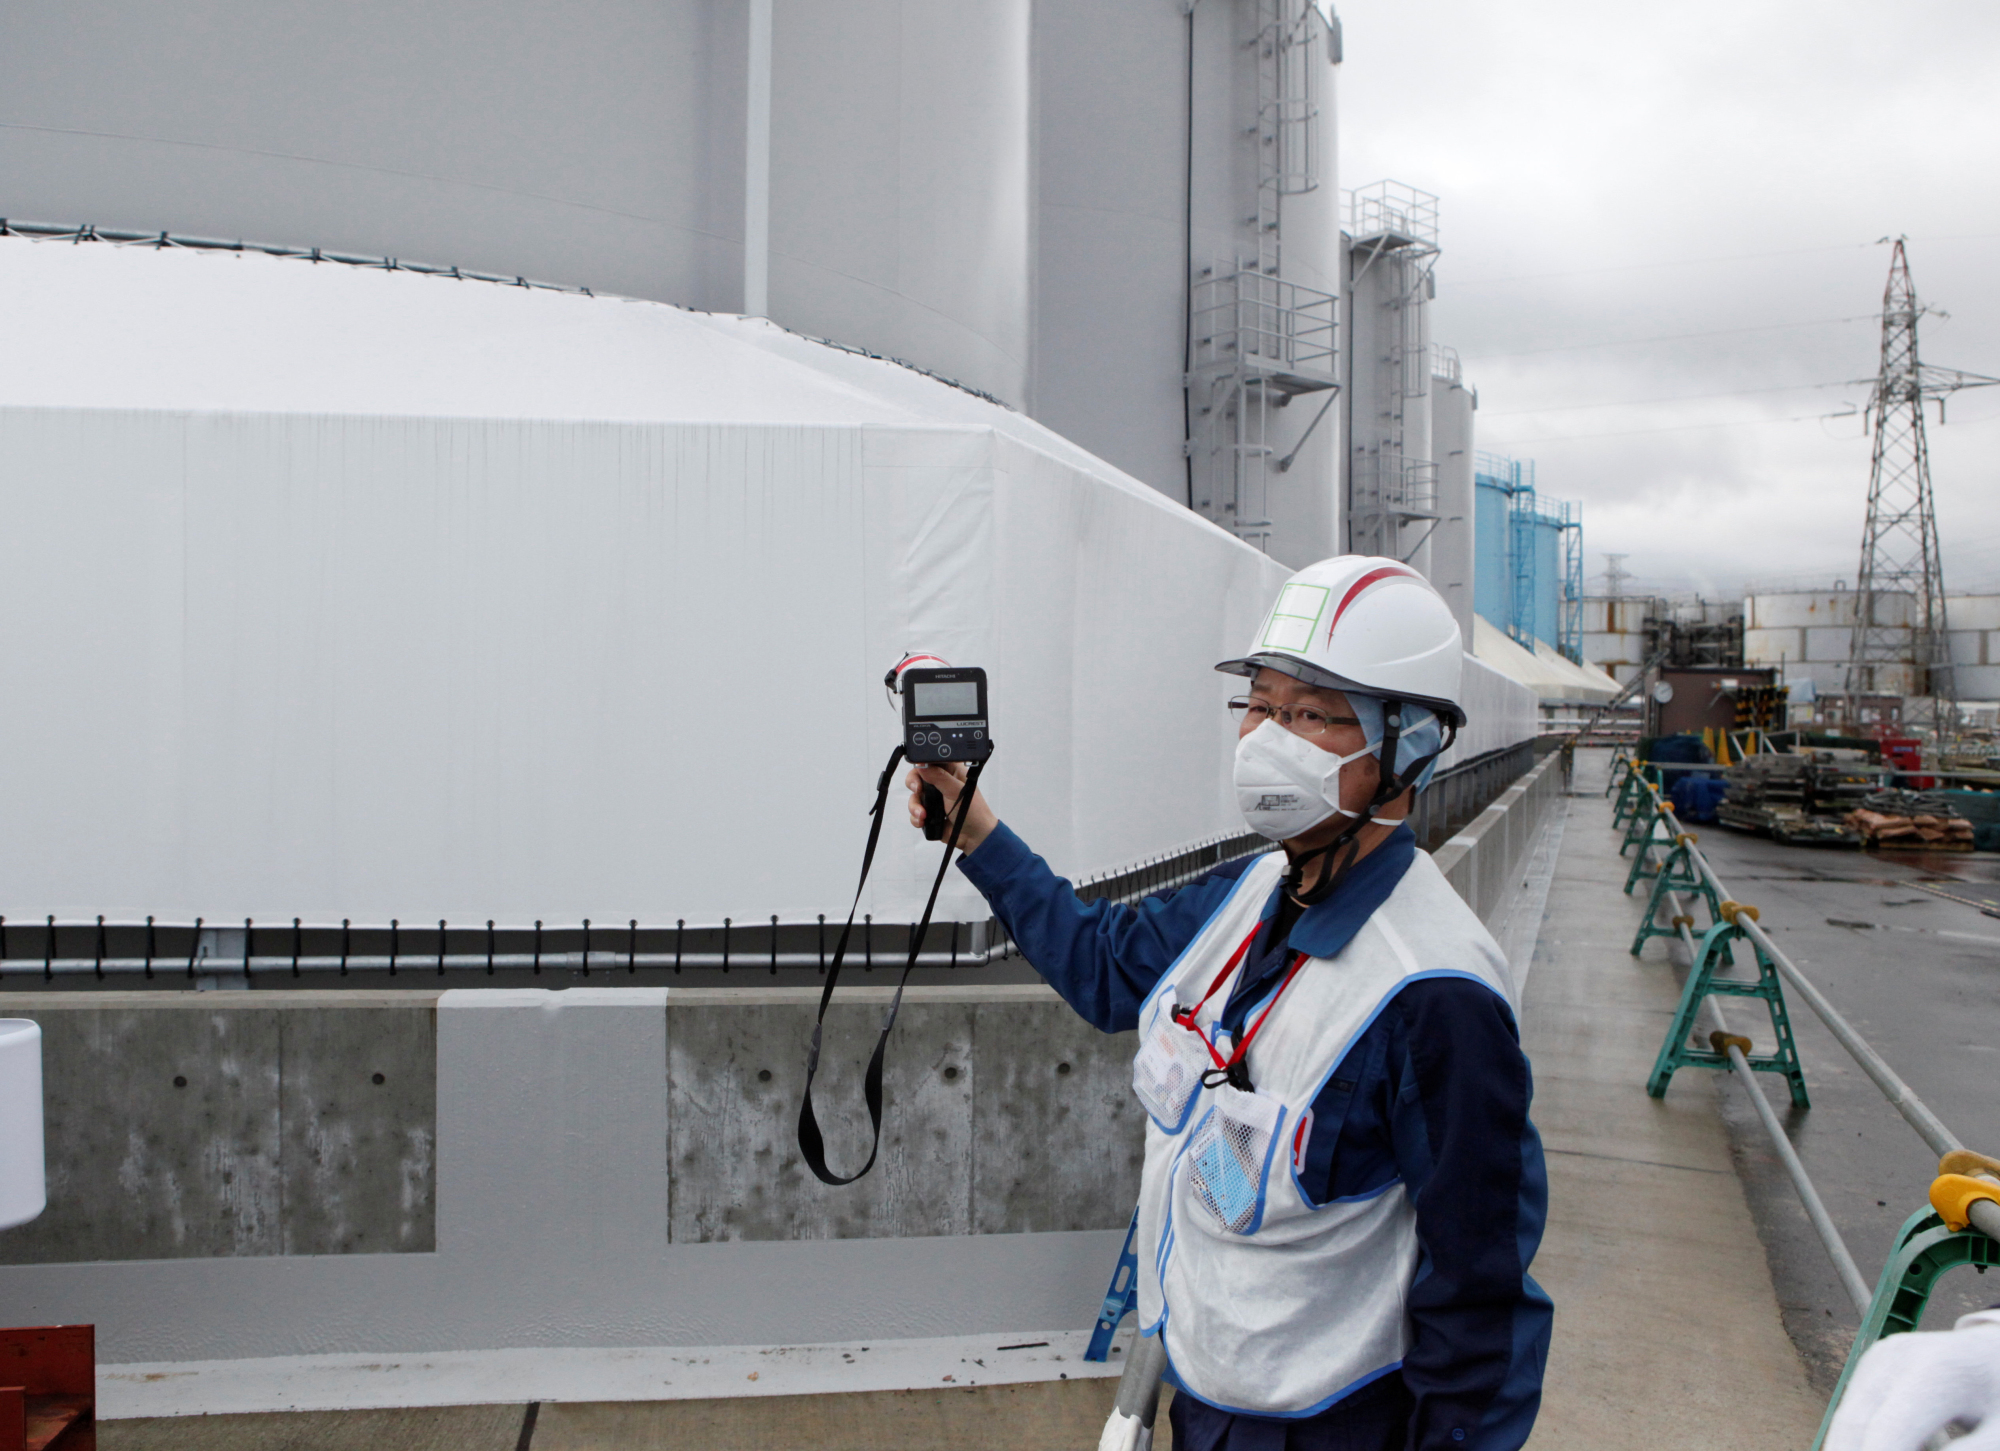 An employee of Tokyo Electric Power Co's uses a geiger counter next to storage tanks for radioactive water at tsunami-crippled Fukushima Daiichi nuclear power plant in Okuma town, Fukushima prefecture